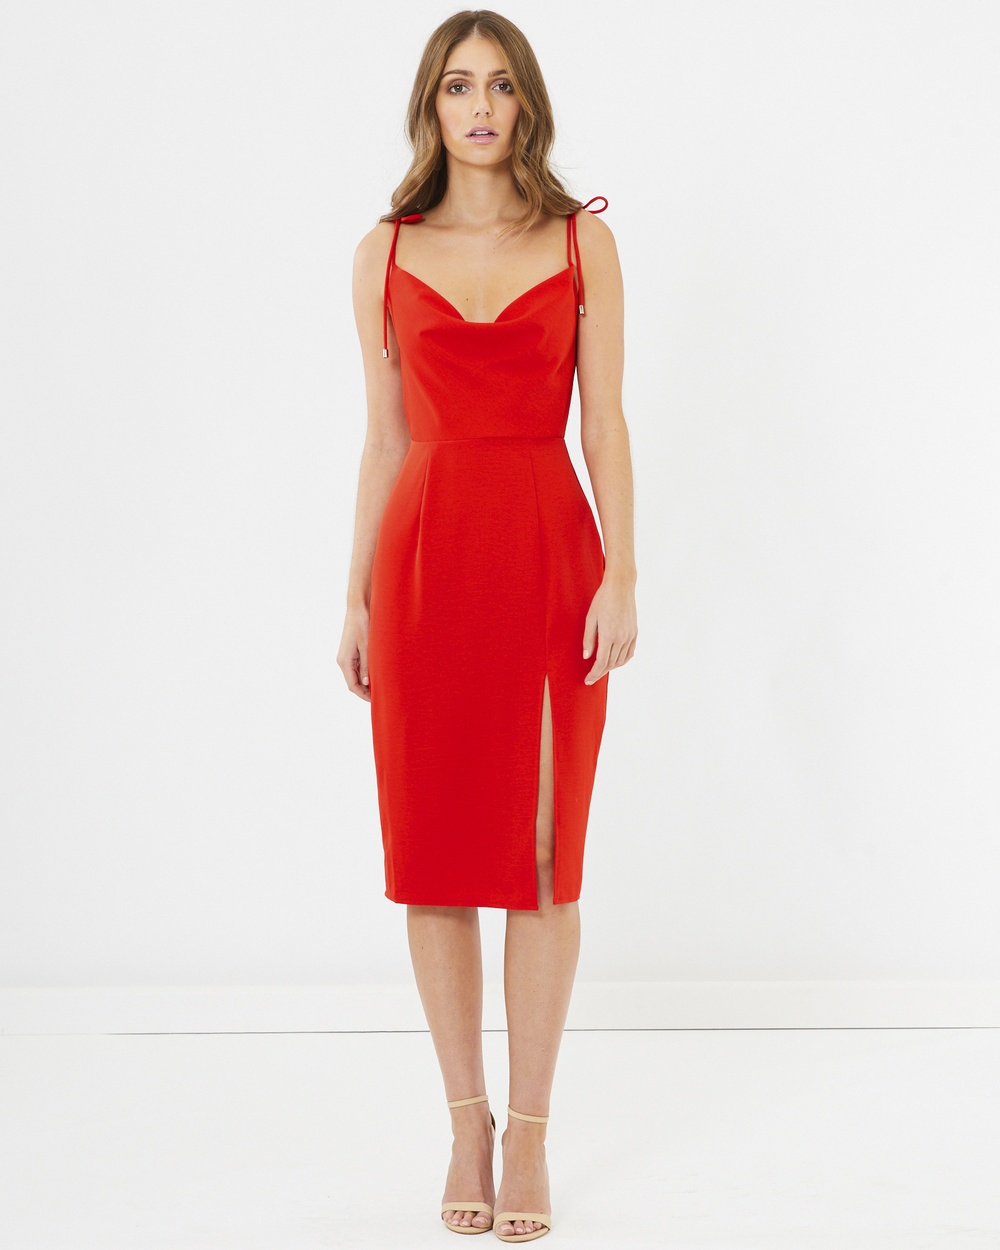 CHANCERY Sadie Cowl Neck Dress Bodycon Dresses Red Sadie Cowl Neck Dress